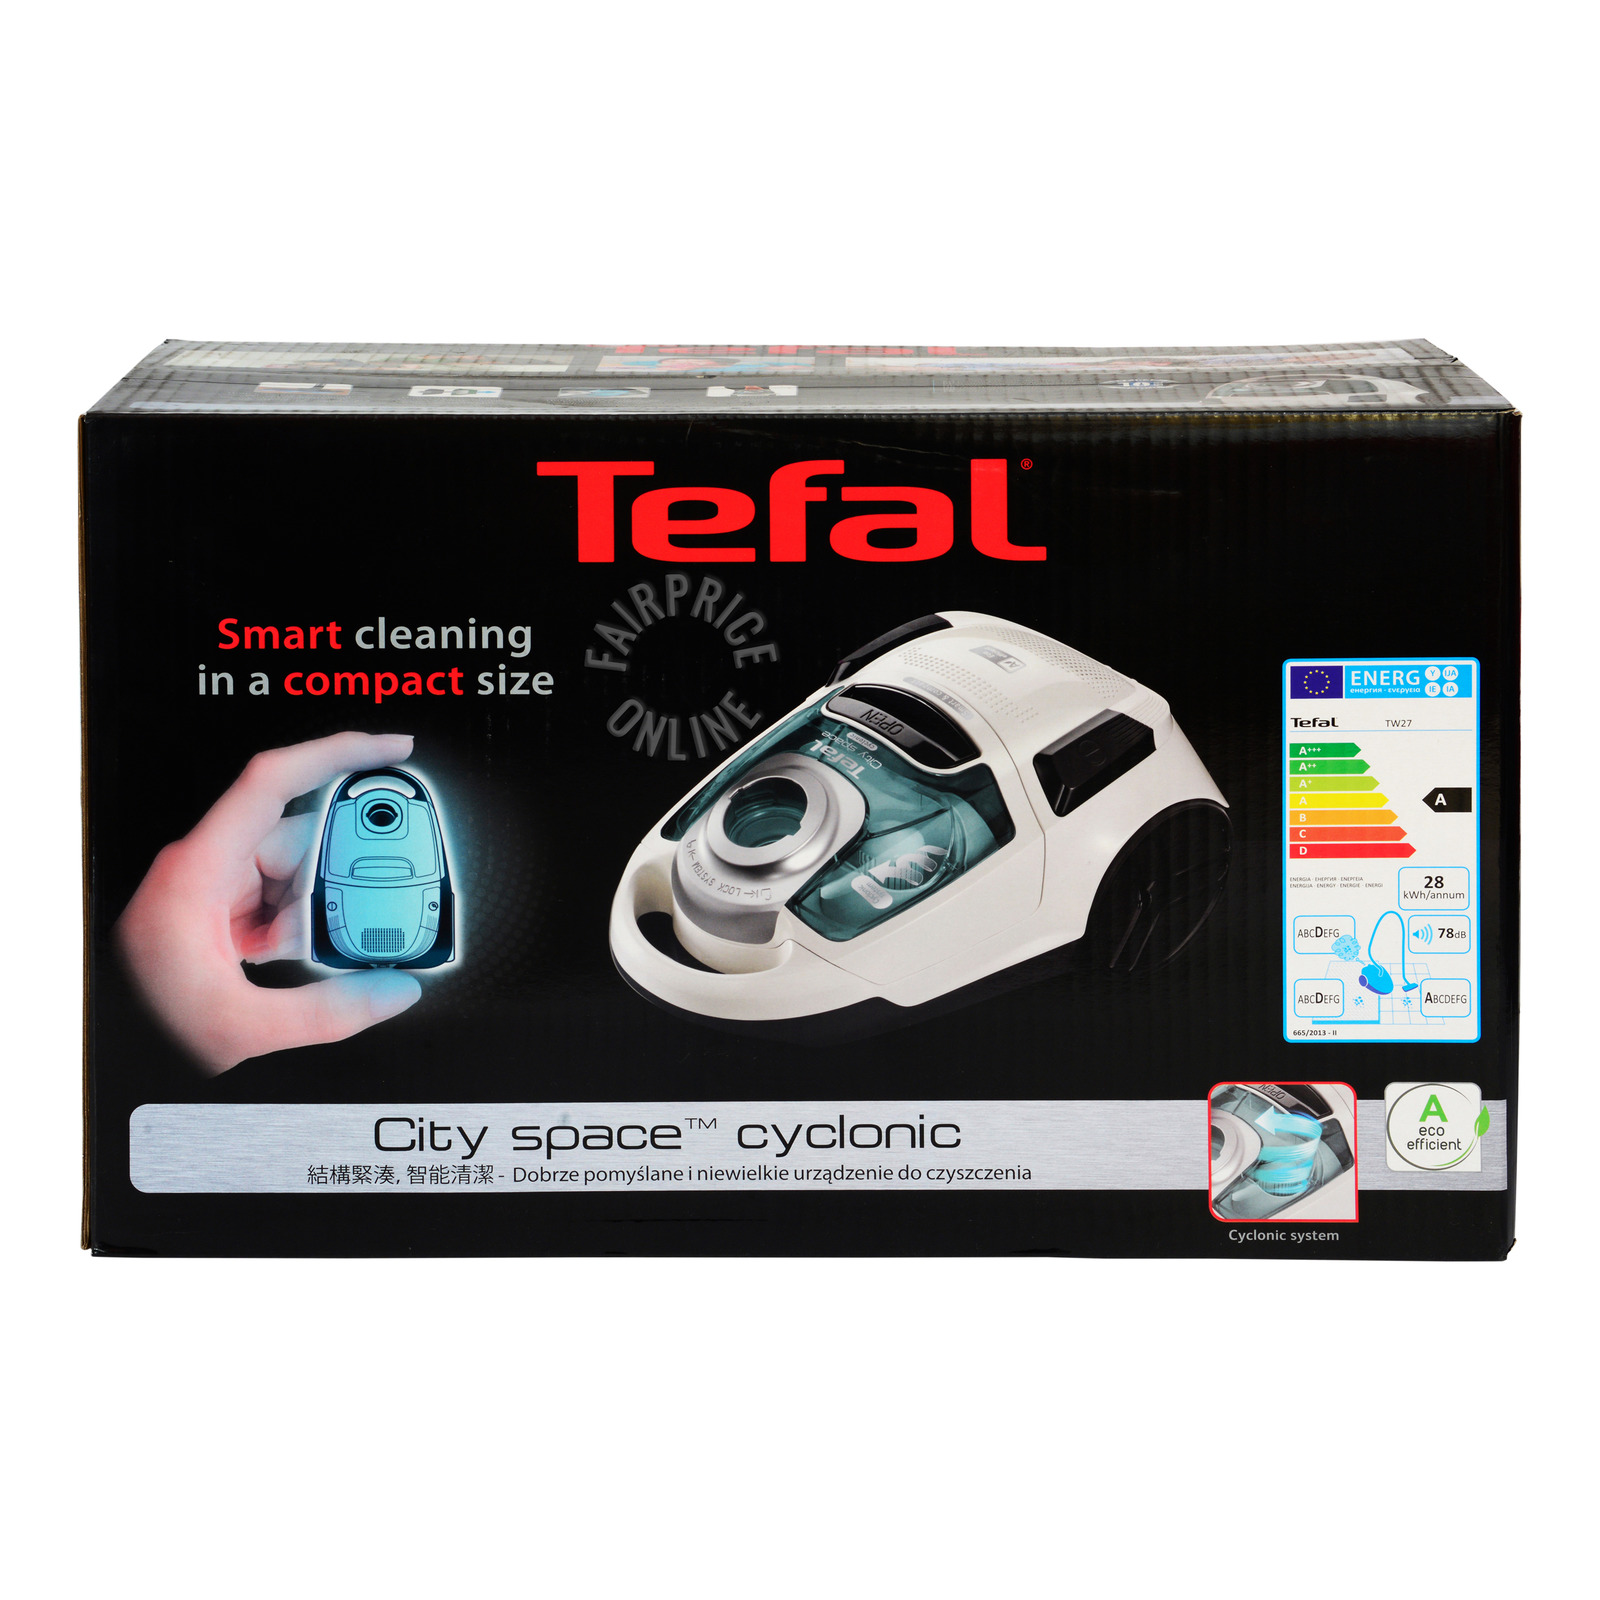 Tefal City Space Cyclonic Vacuum Cleaner (TW2757)